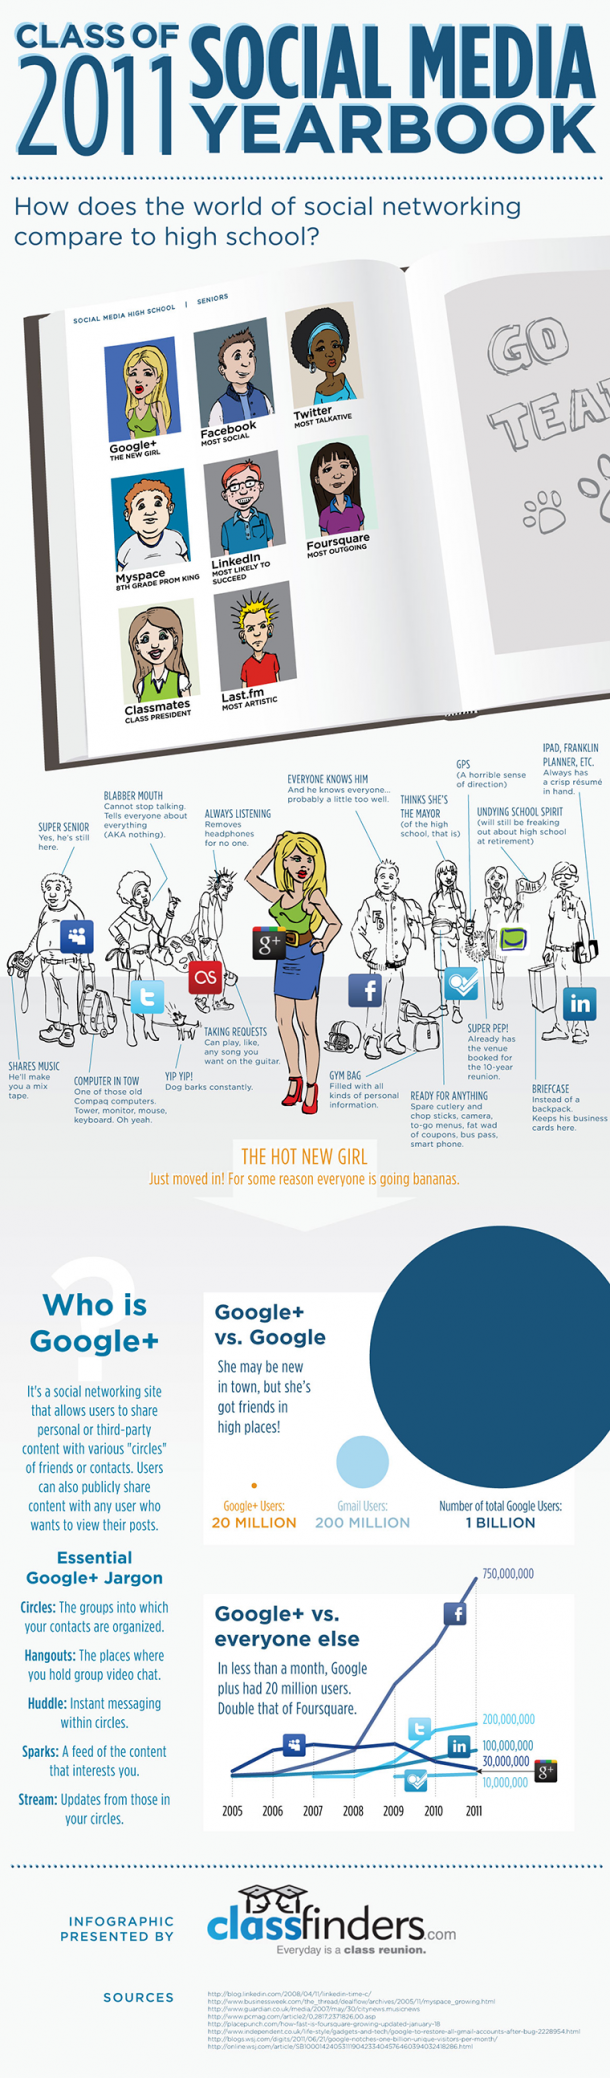 Social Media Yearbook 2011